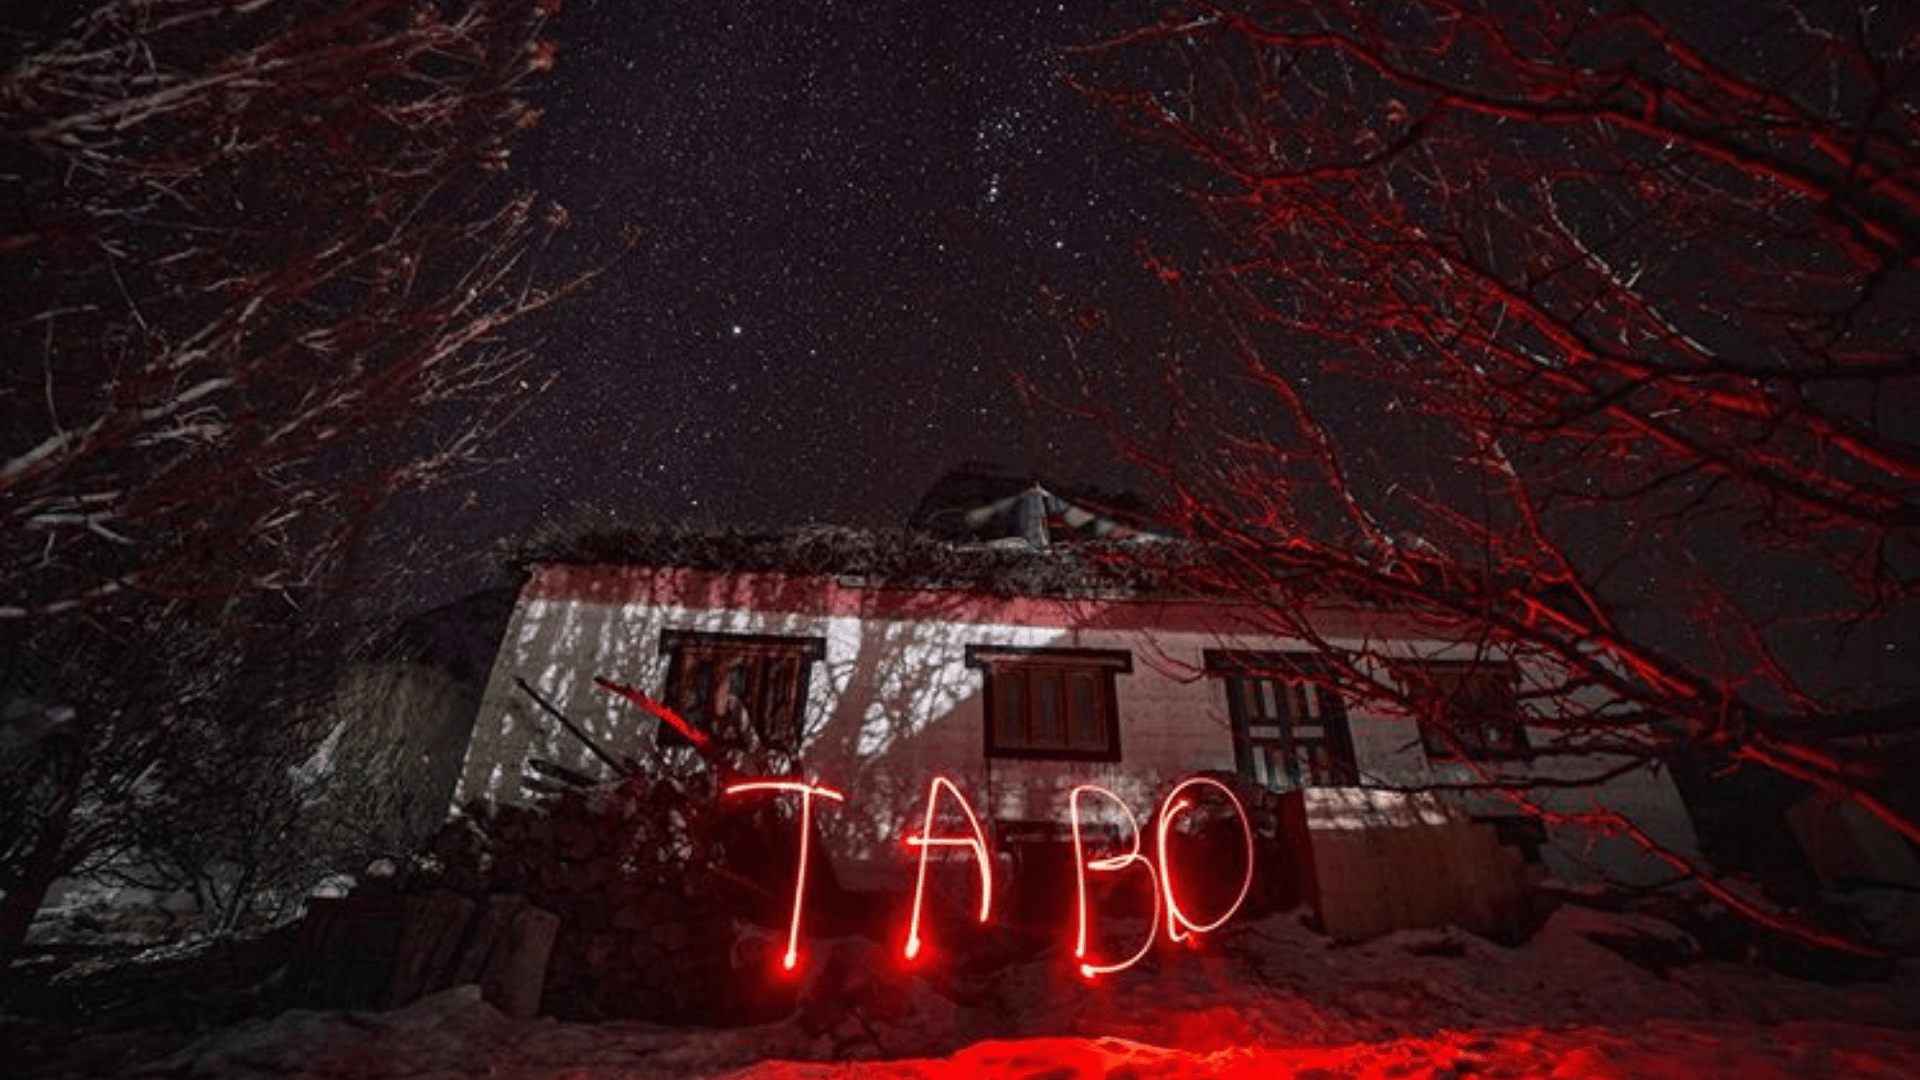 photo by sambit in Tabo